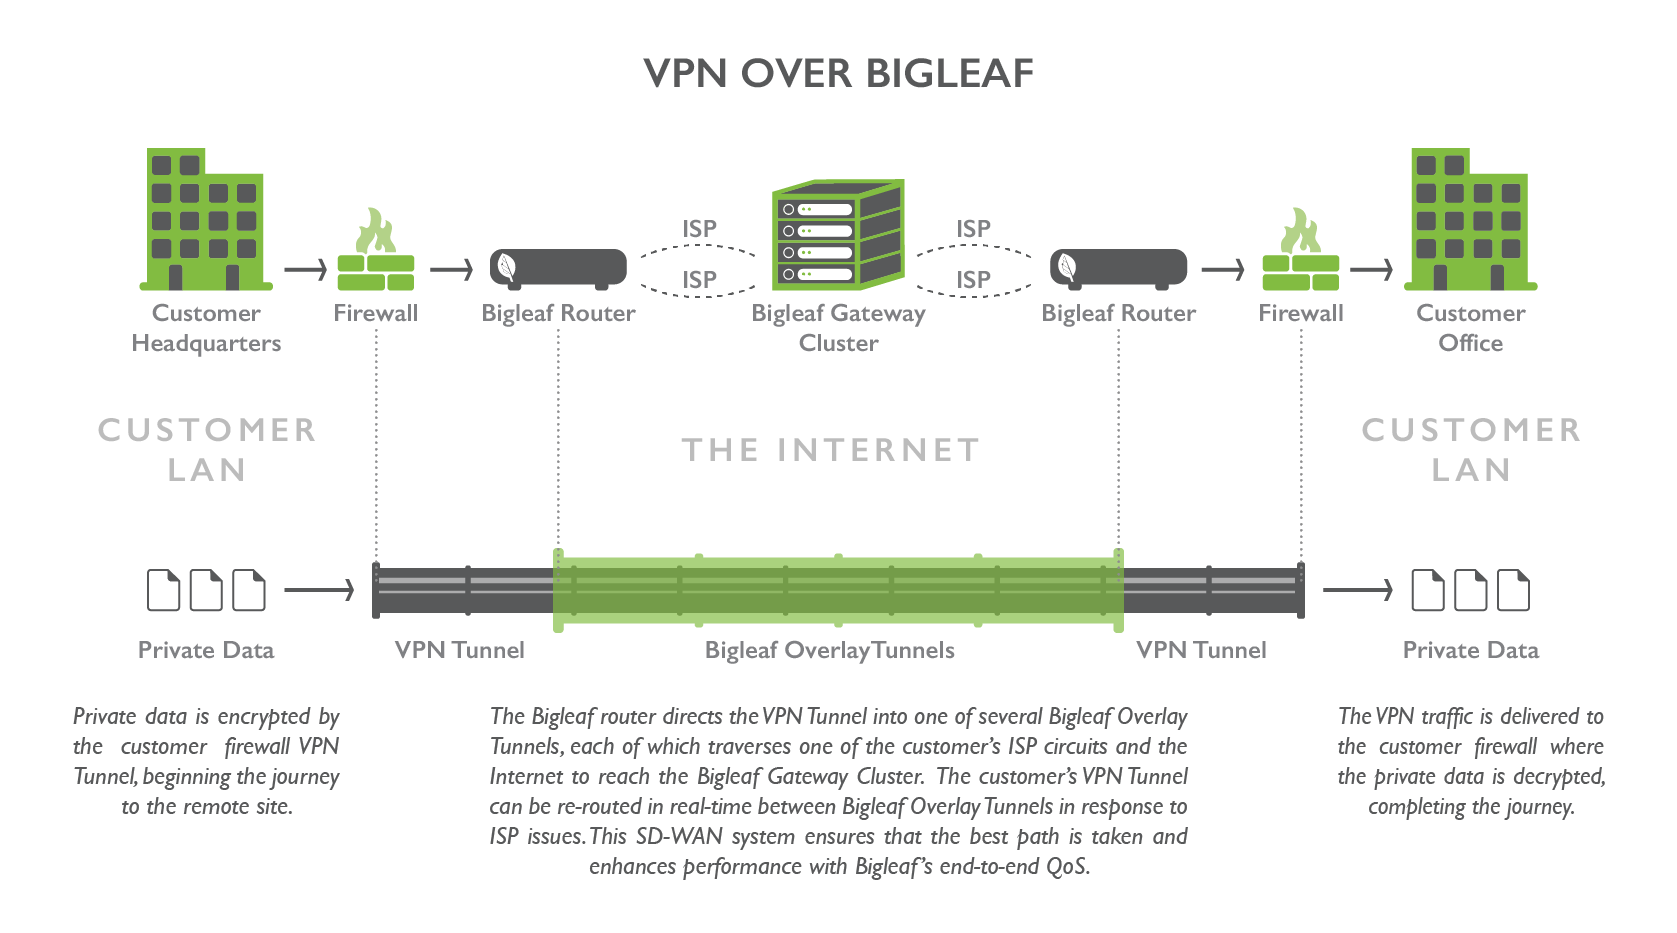 VPN-Over-Bigleaf-text